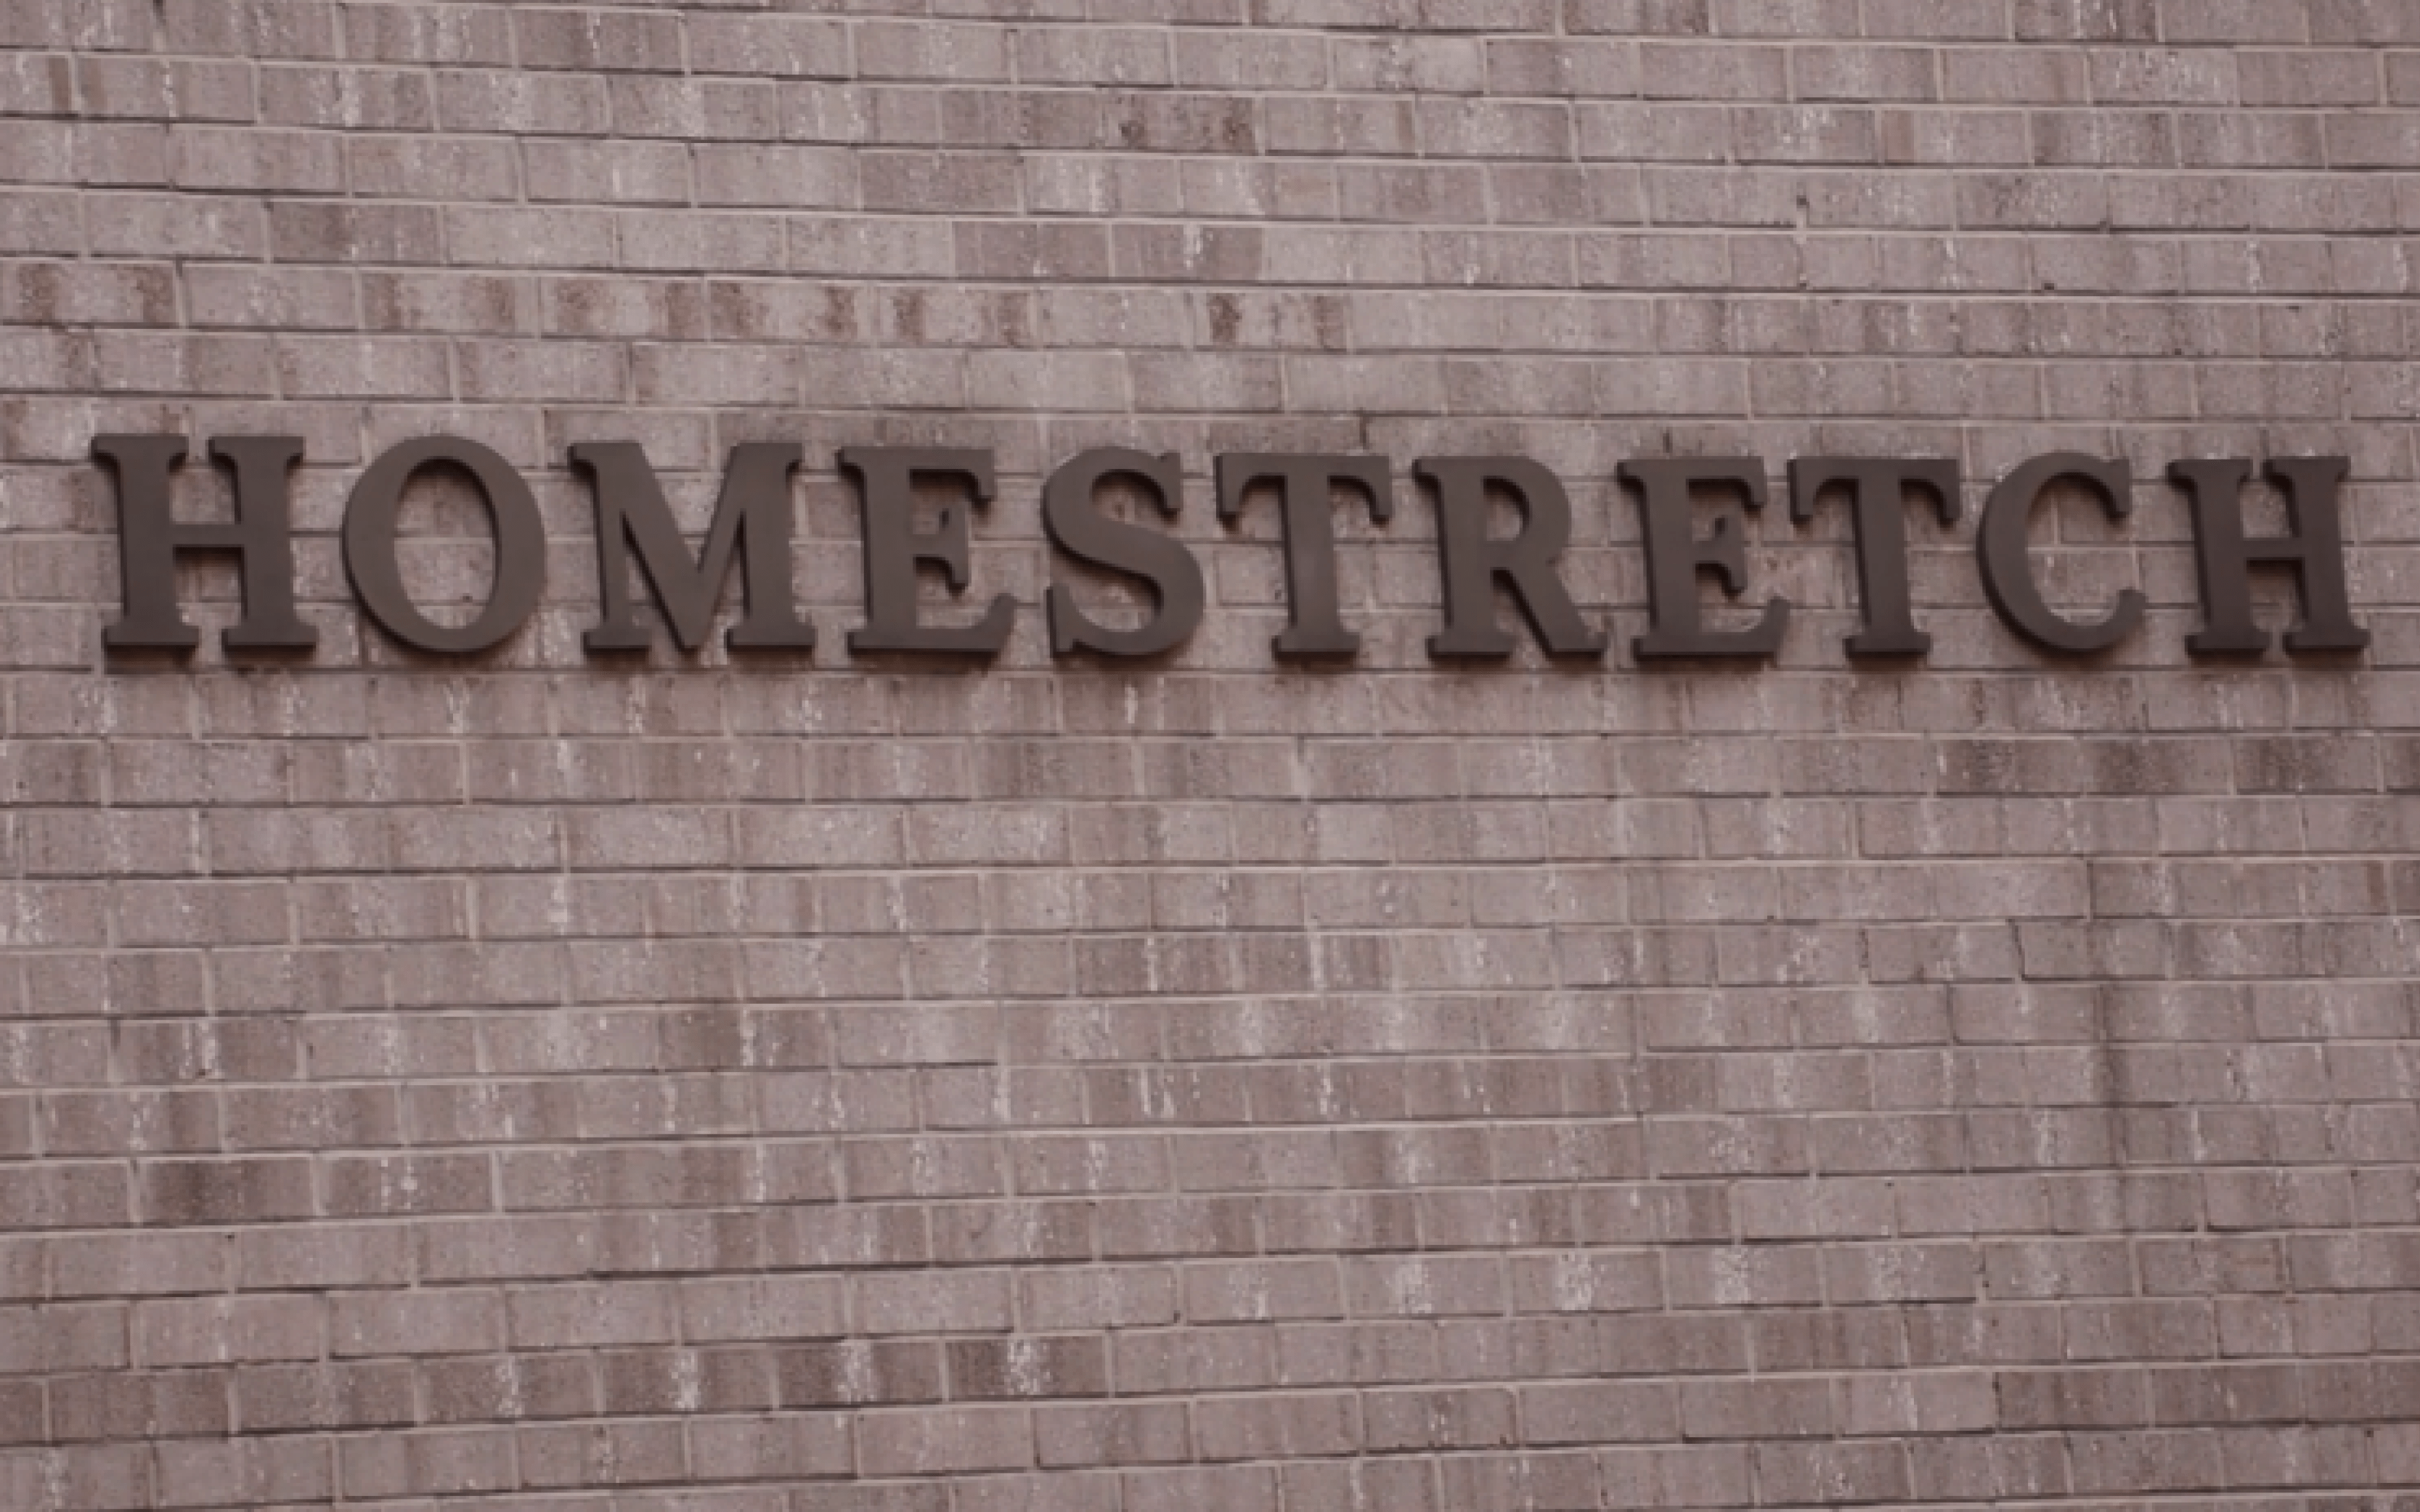 How Homestretch Doubled Its Fundraising By Making Value Clear